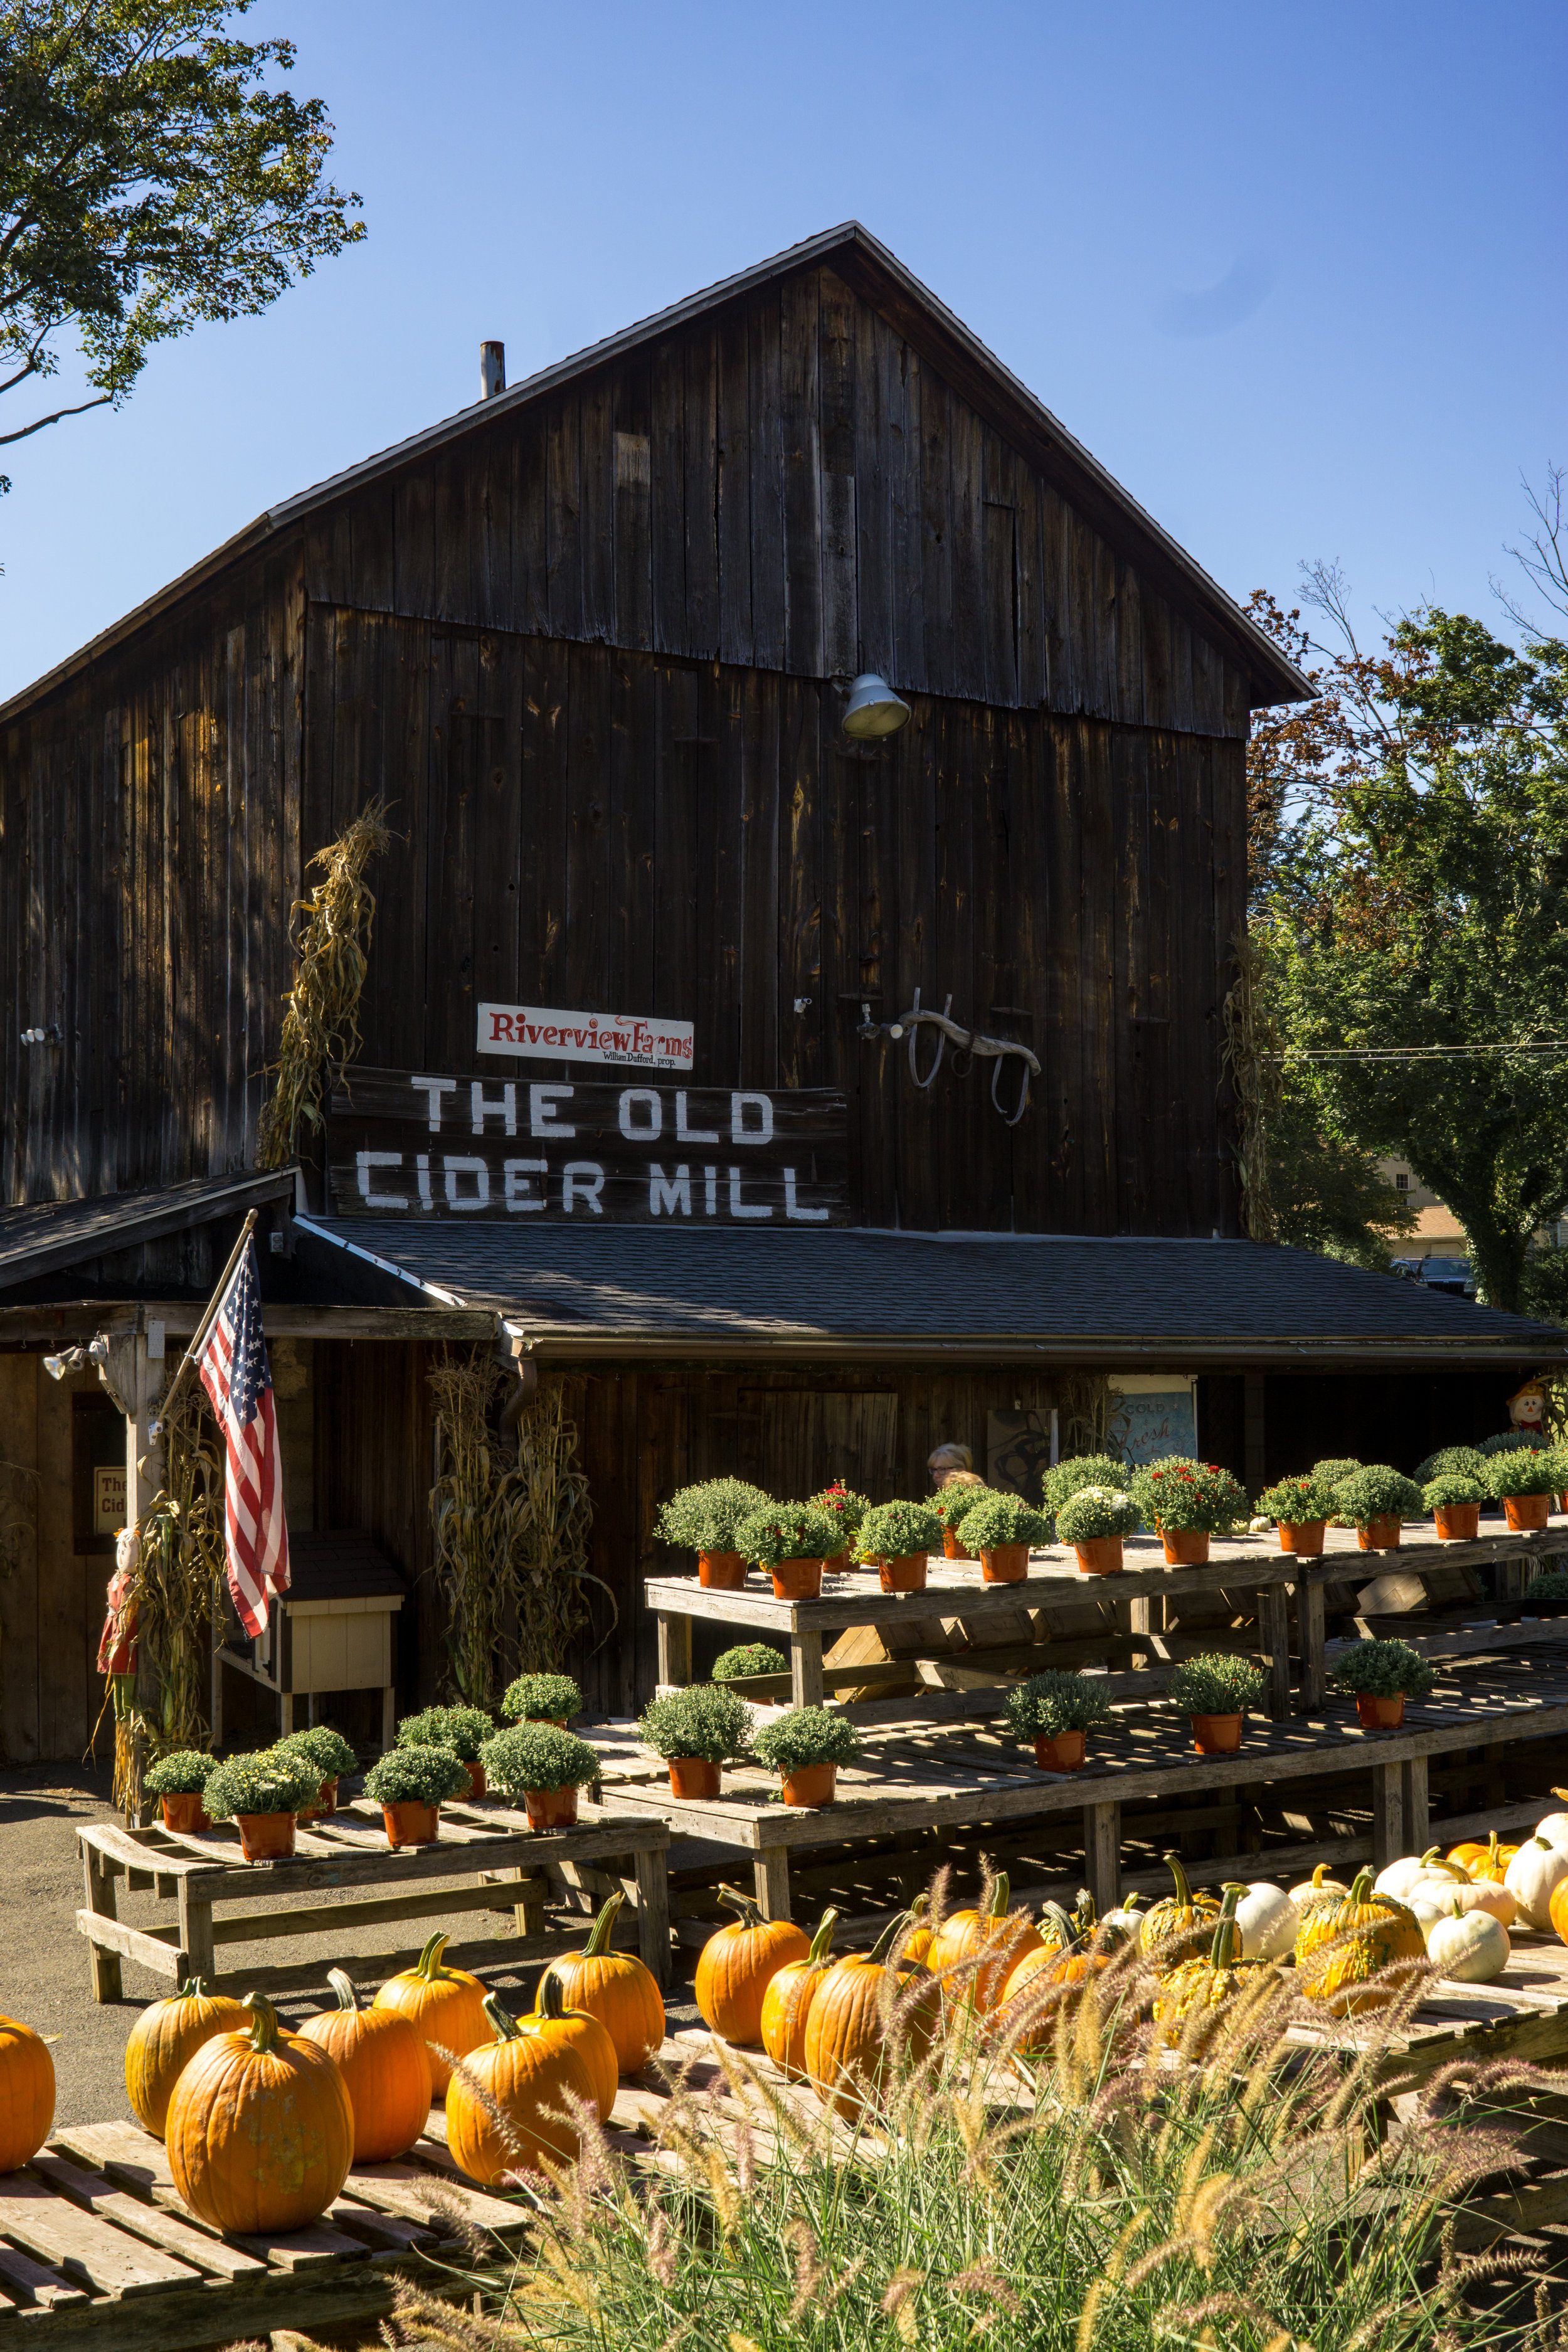 the old cider mill-17-2.jpg